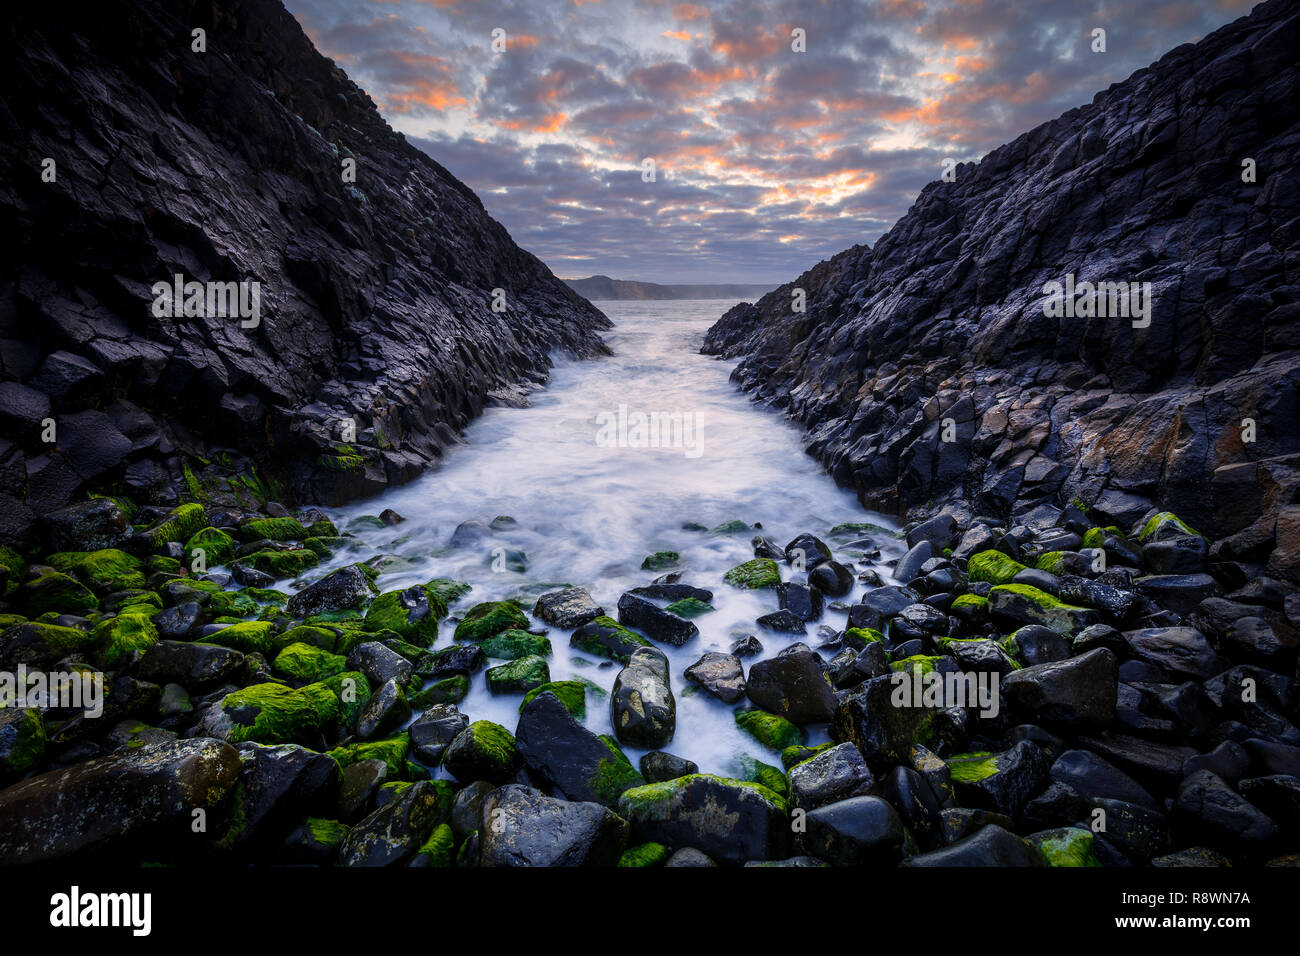 Basalt Seascape, Blackpoint, Western Australia Stock Photo